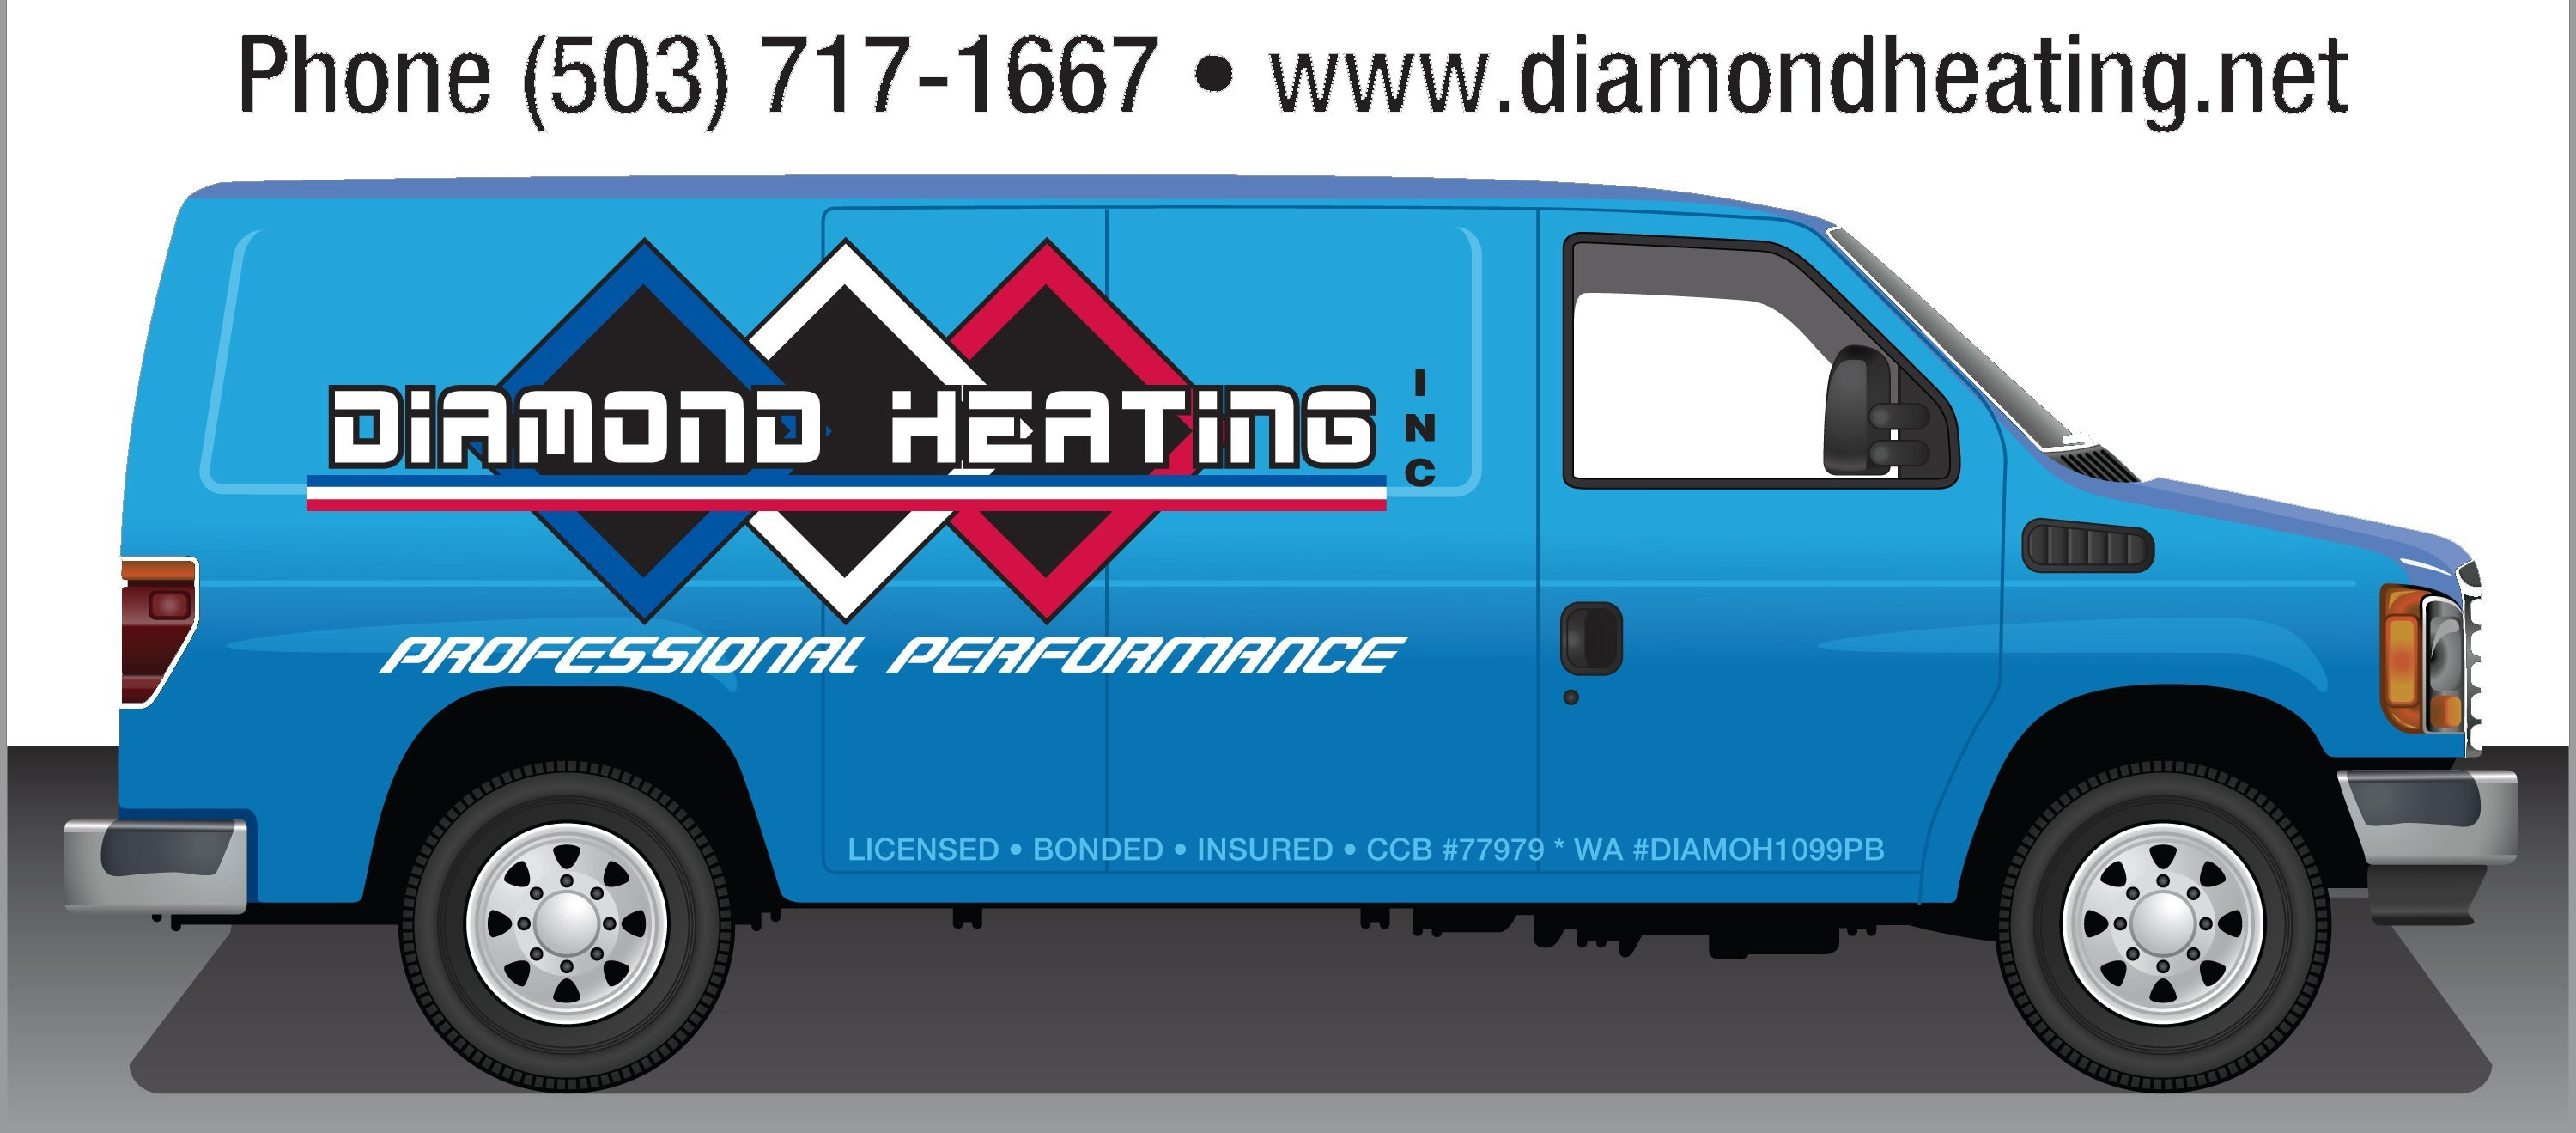 Diamond Heating